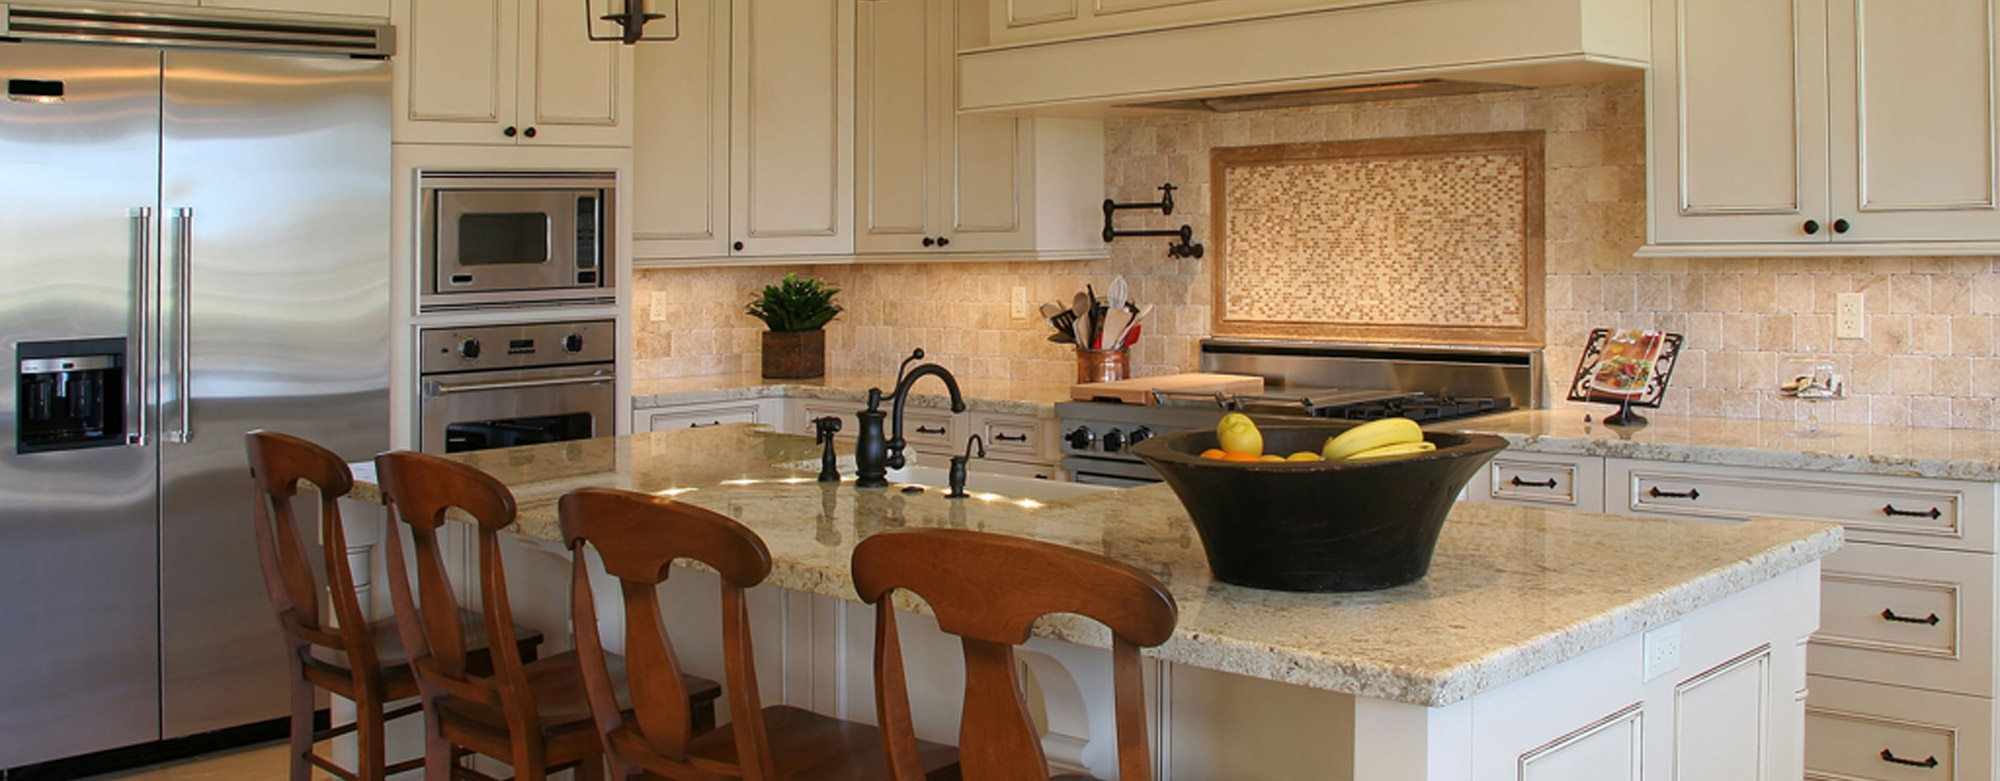 Granite countertops for less -  We Accept Nothing Less Than 100 Customer Satisfaction